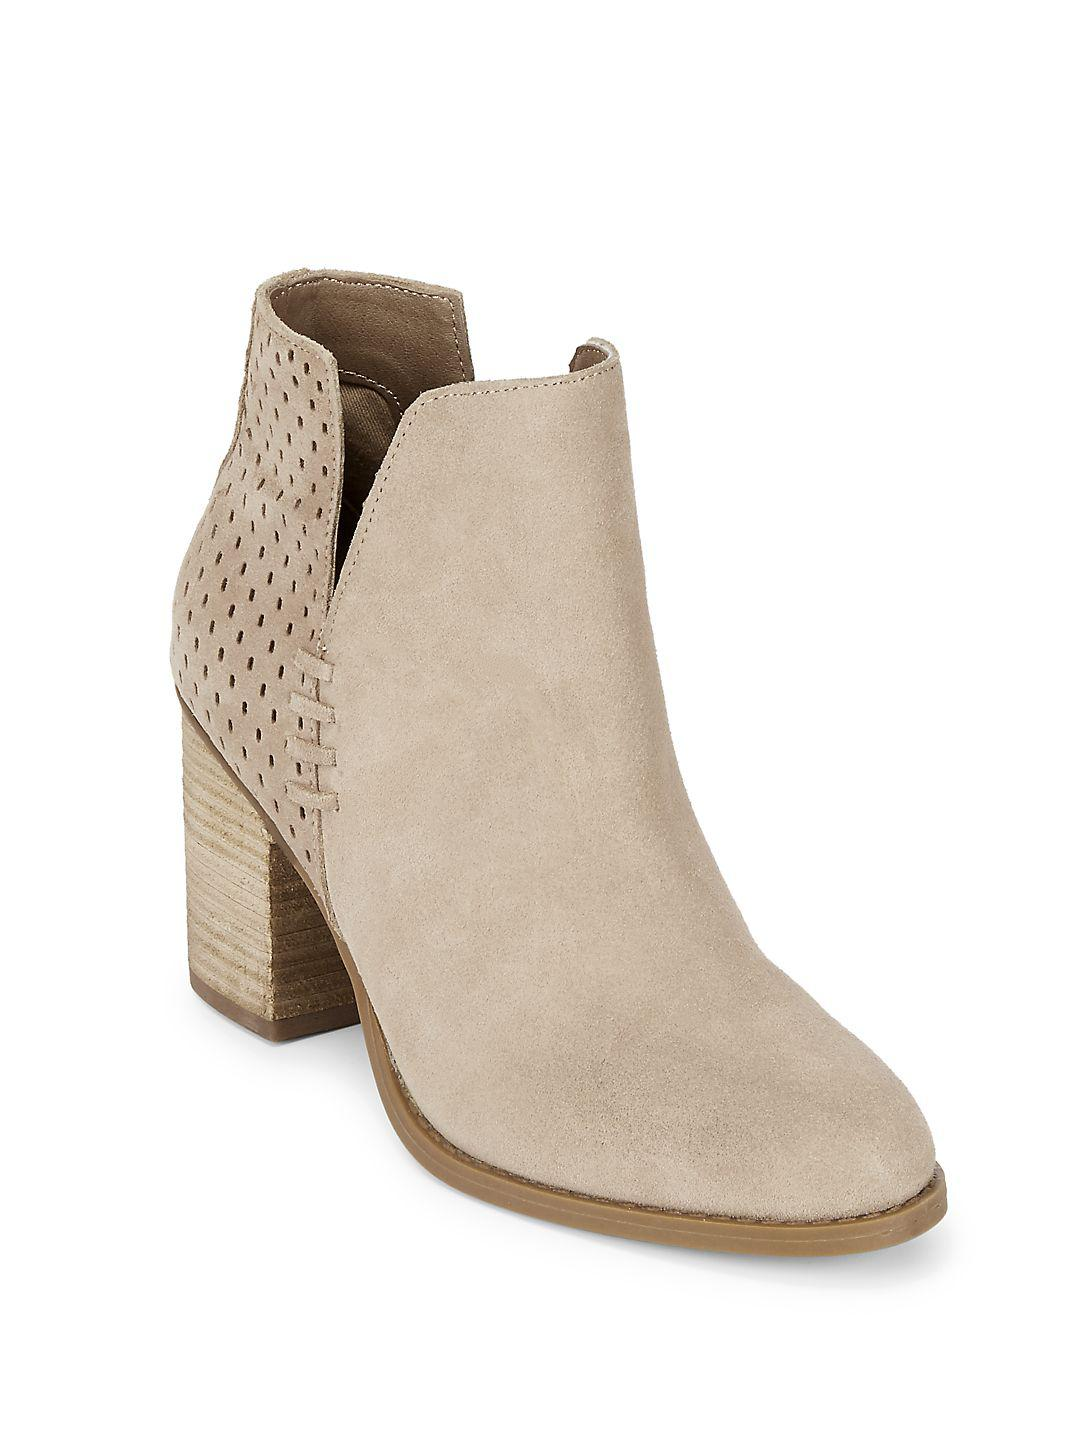 Steve Madden Soyna Suede Boots in Black